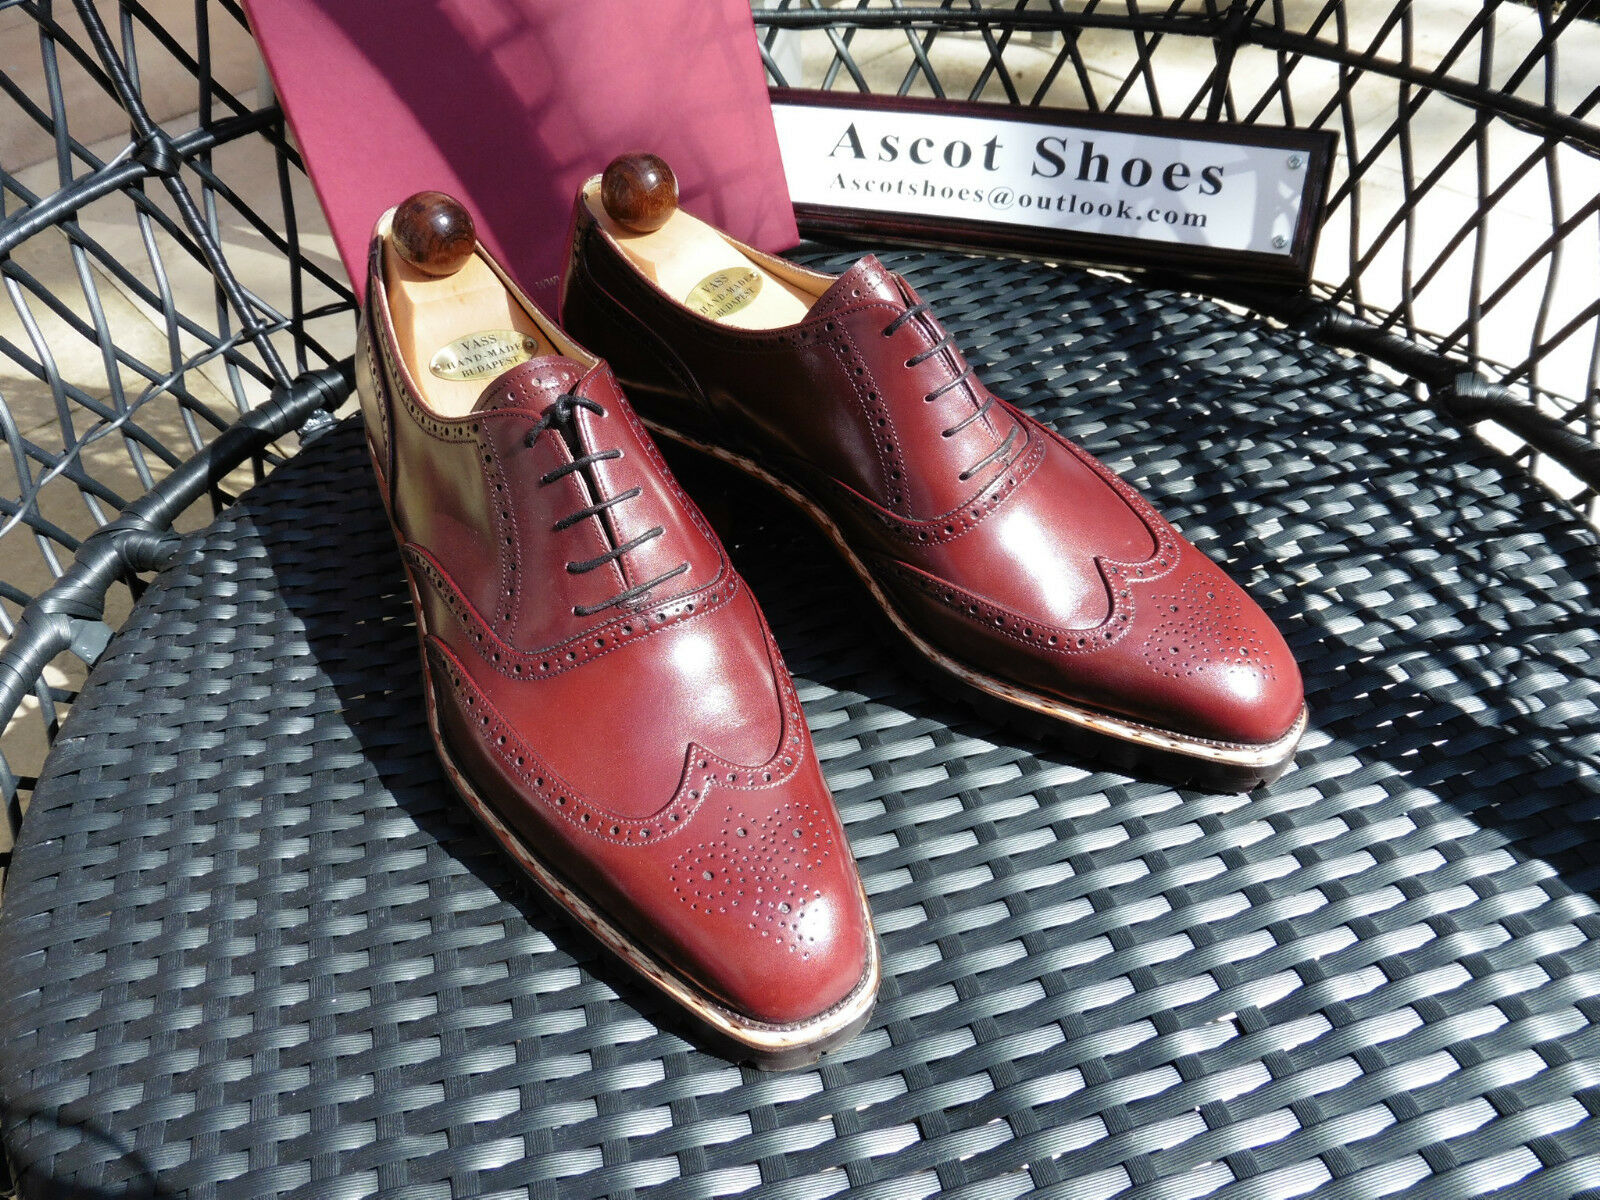 vendita con alto sconto Vt377-Vass Brogue Brogue Brogue Oxford EU44.5 UK10.5 US11.5 D-BORDEAUX VITELLO-U ultimo  grande sconto